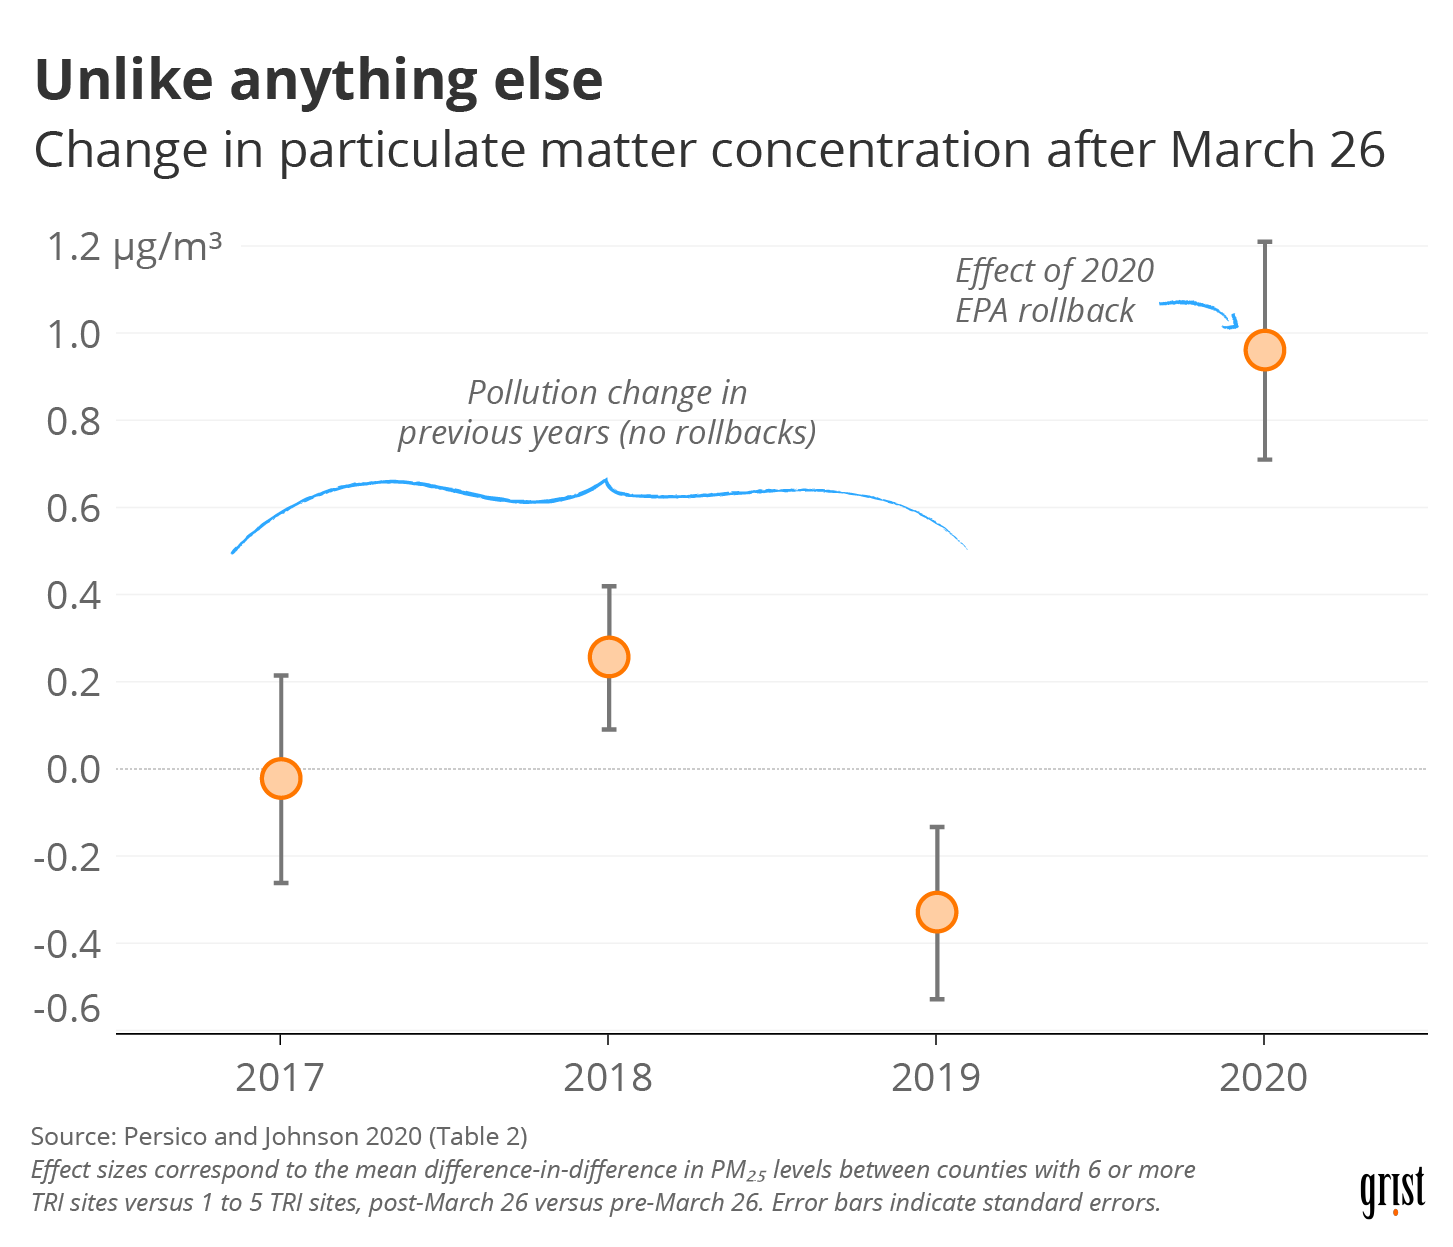 A chart showing the change in particulate matter concentration in the weeks following March 26 for the years 2017–2020. In 2020, due to an EPA rollback, pollution rose following March 26. In prior years, it didn't.